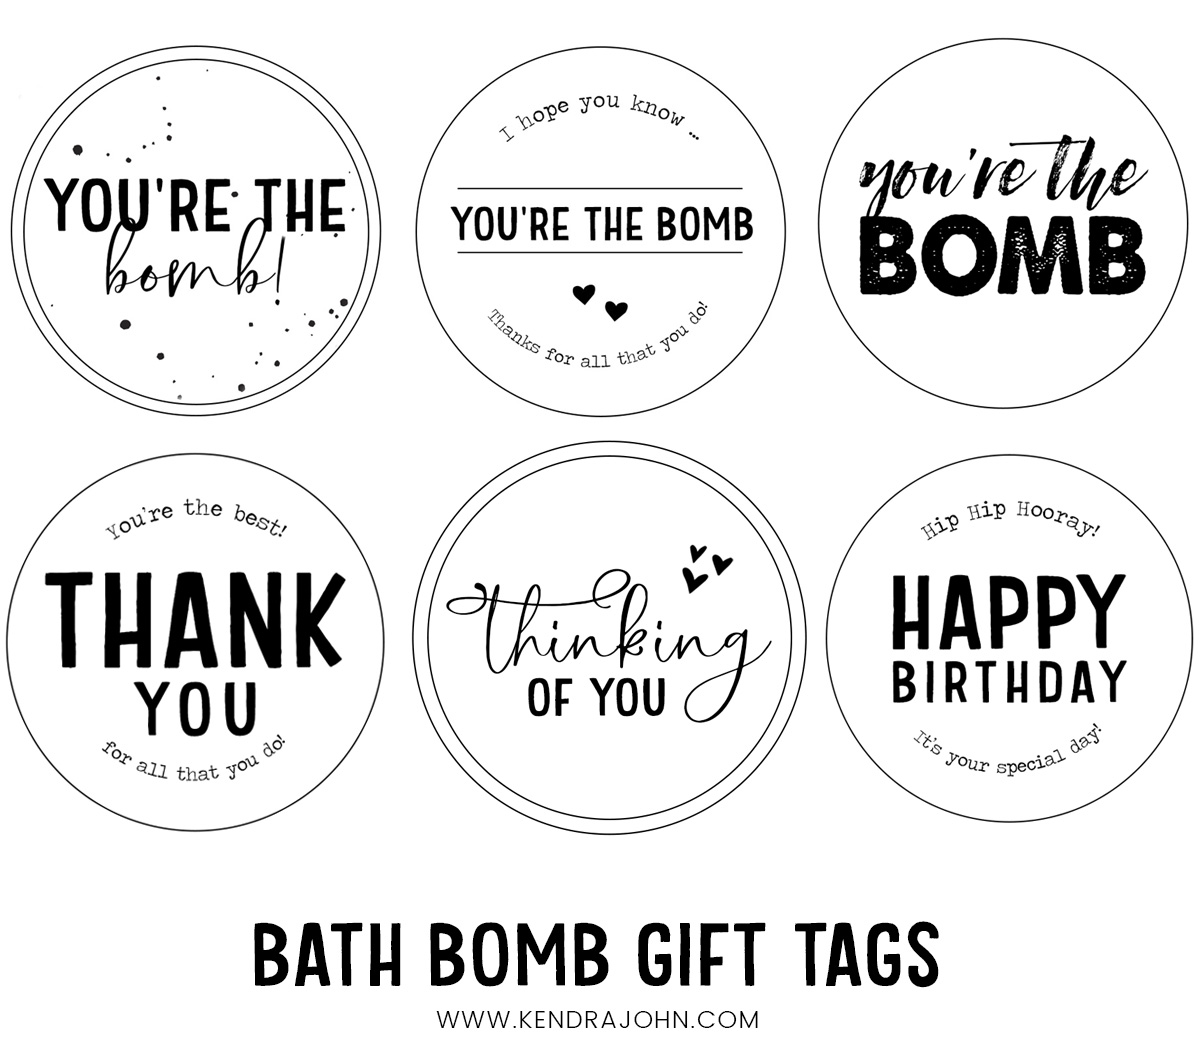 Free Printable Bath Bomb Tag Templates: Free Bath Bomb Gift Tags For All Occasions